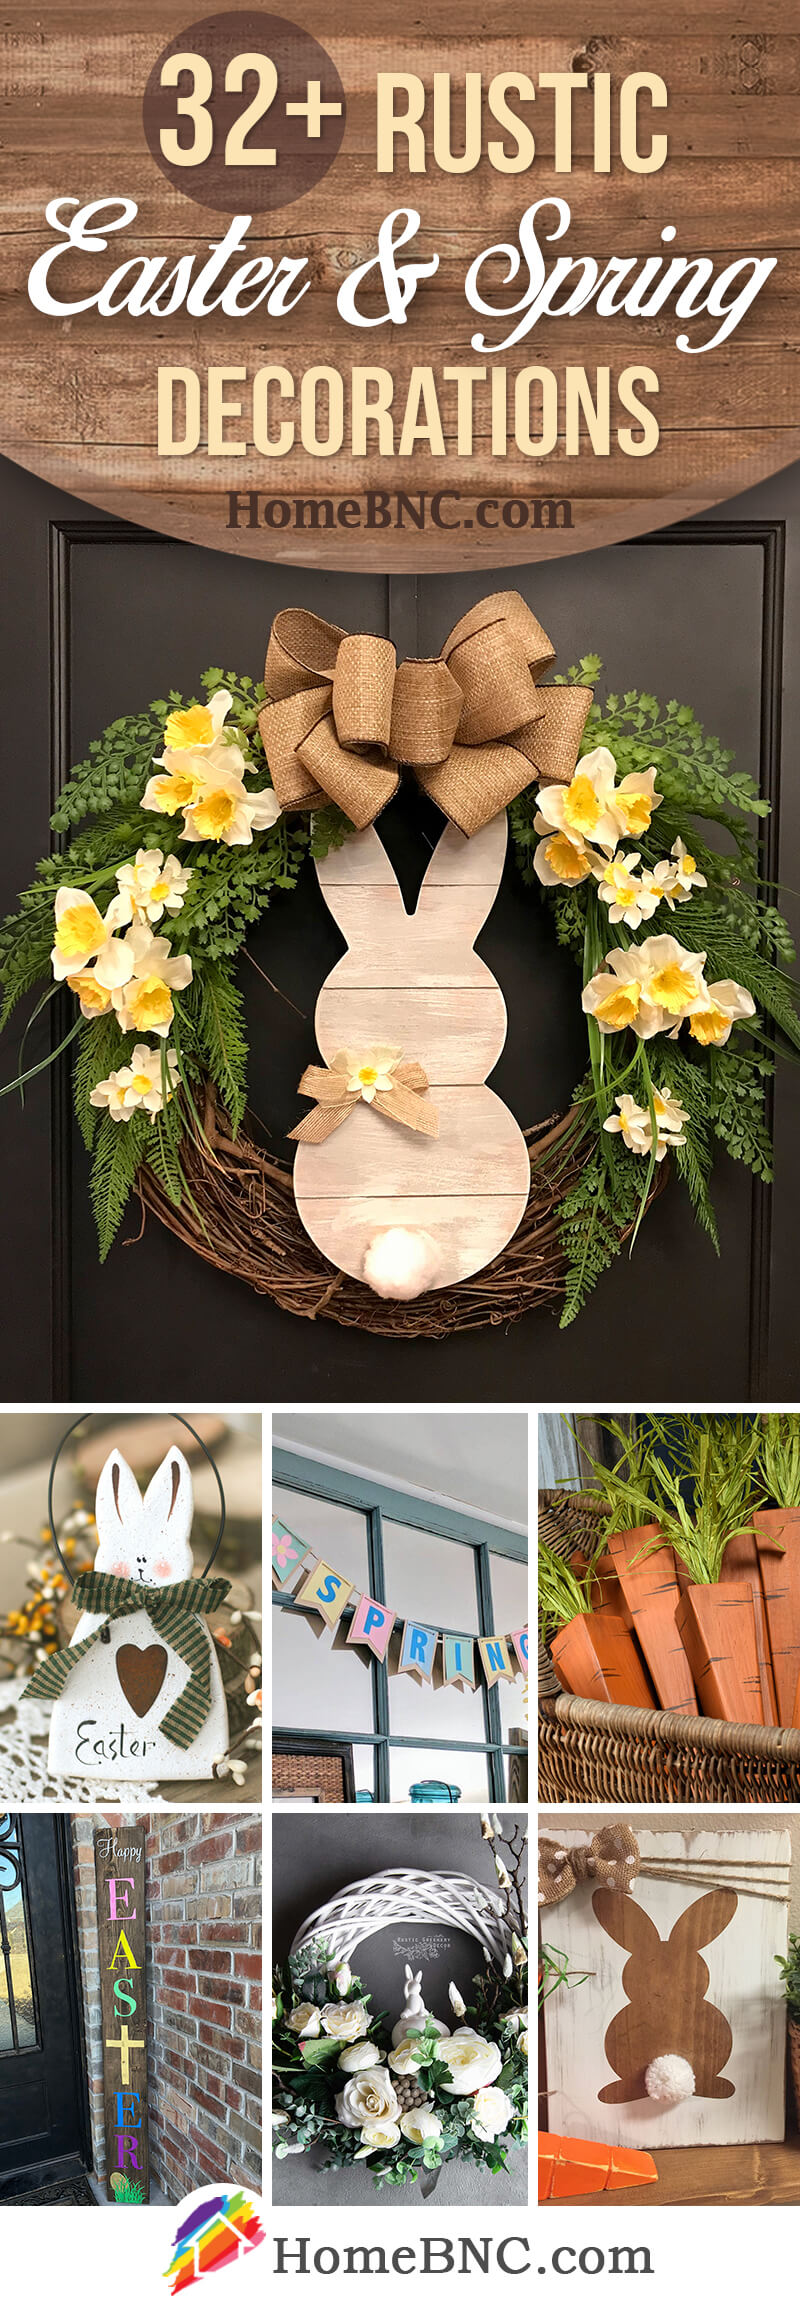 Rustic Easter and Spring Decoration Ideas